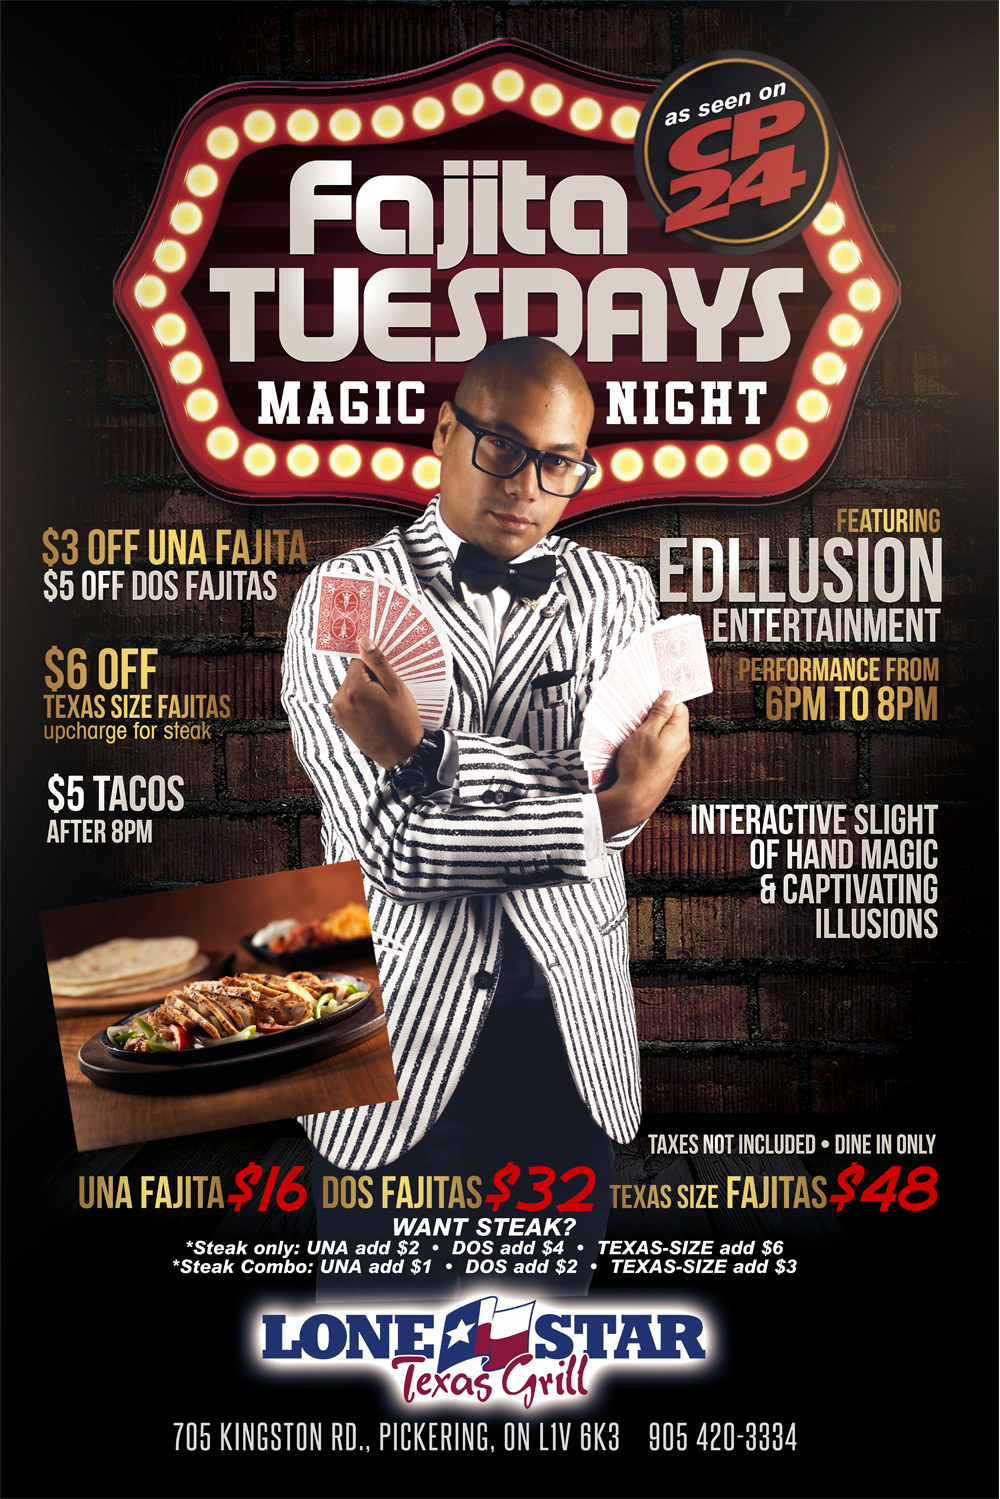 fajita tuesday magic night stand up magic show